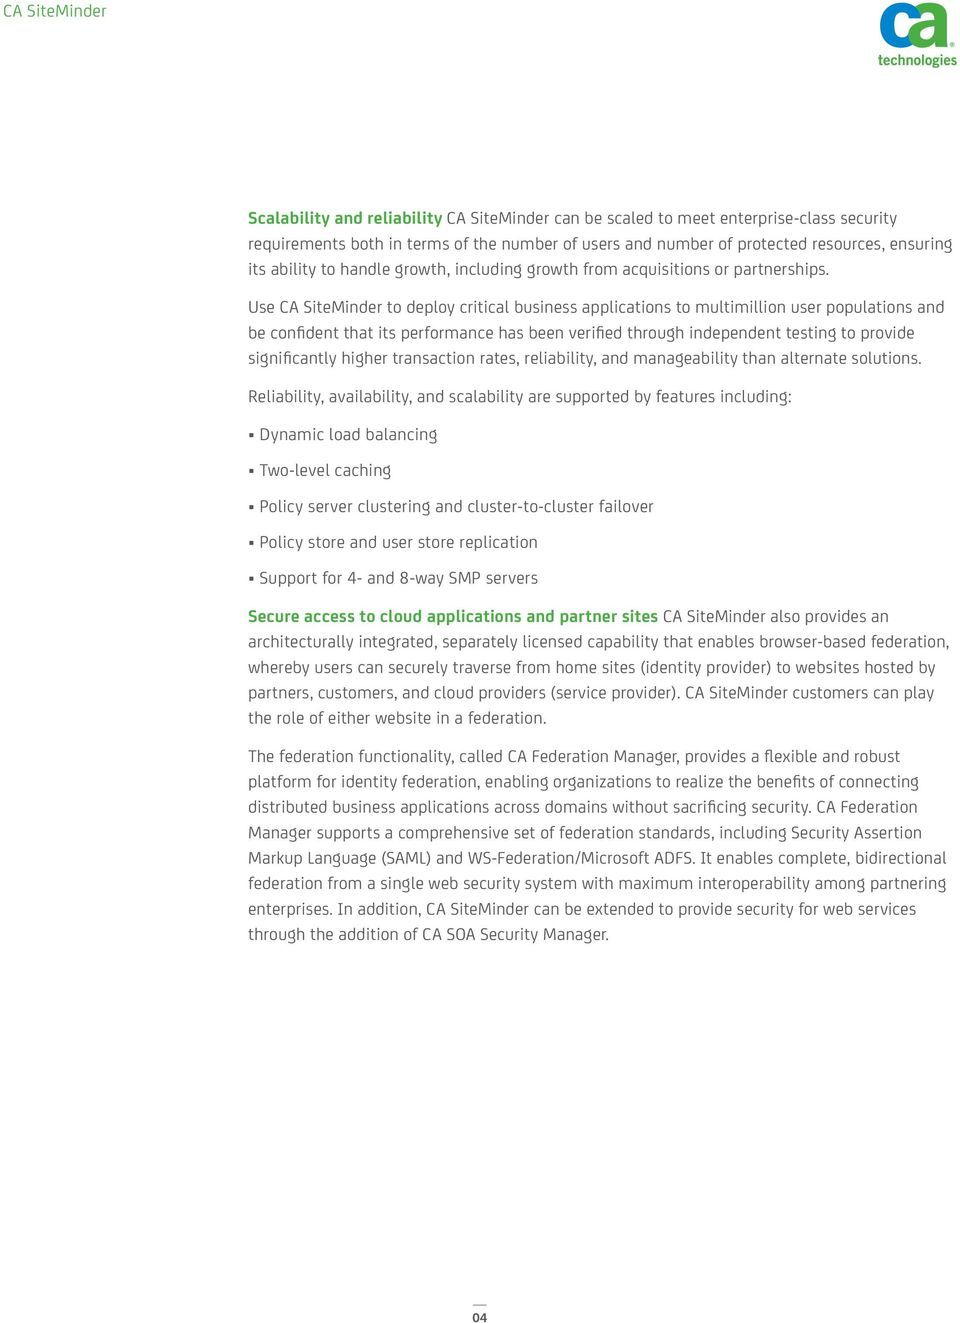 Use CA SiteMinder to deploy critical business applications to multimillion user populations and be confident that its performance has been verified through independent testing to provide